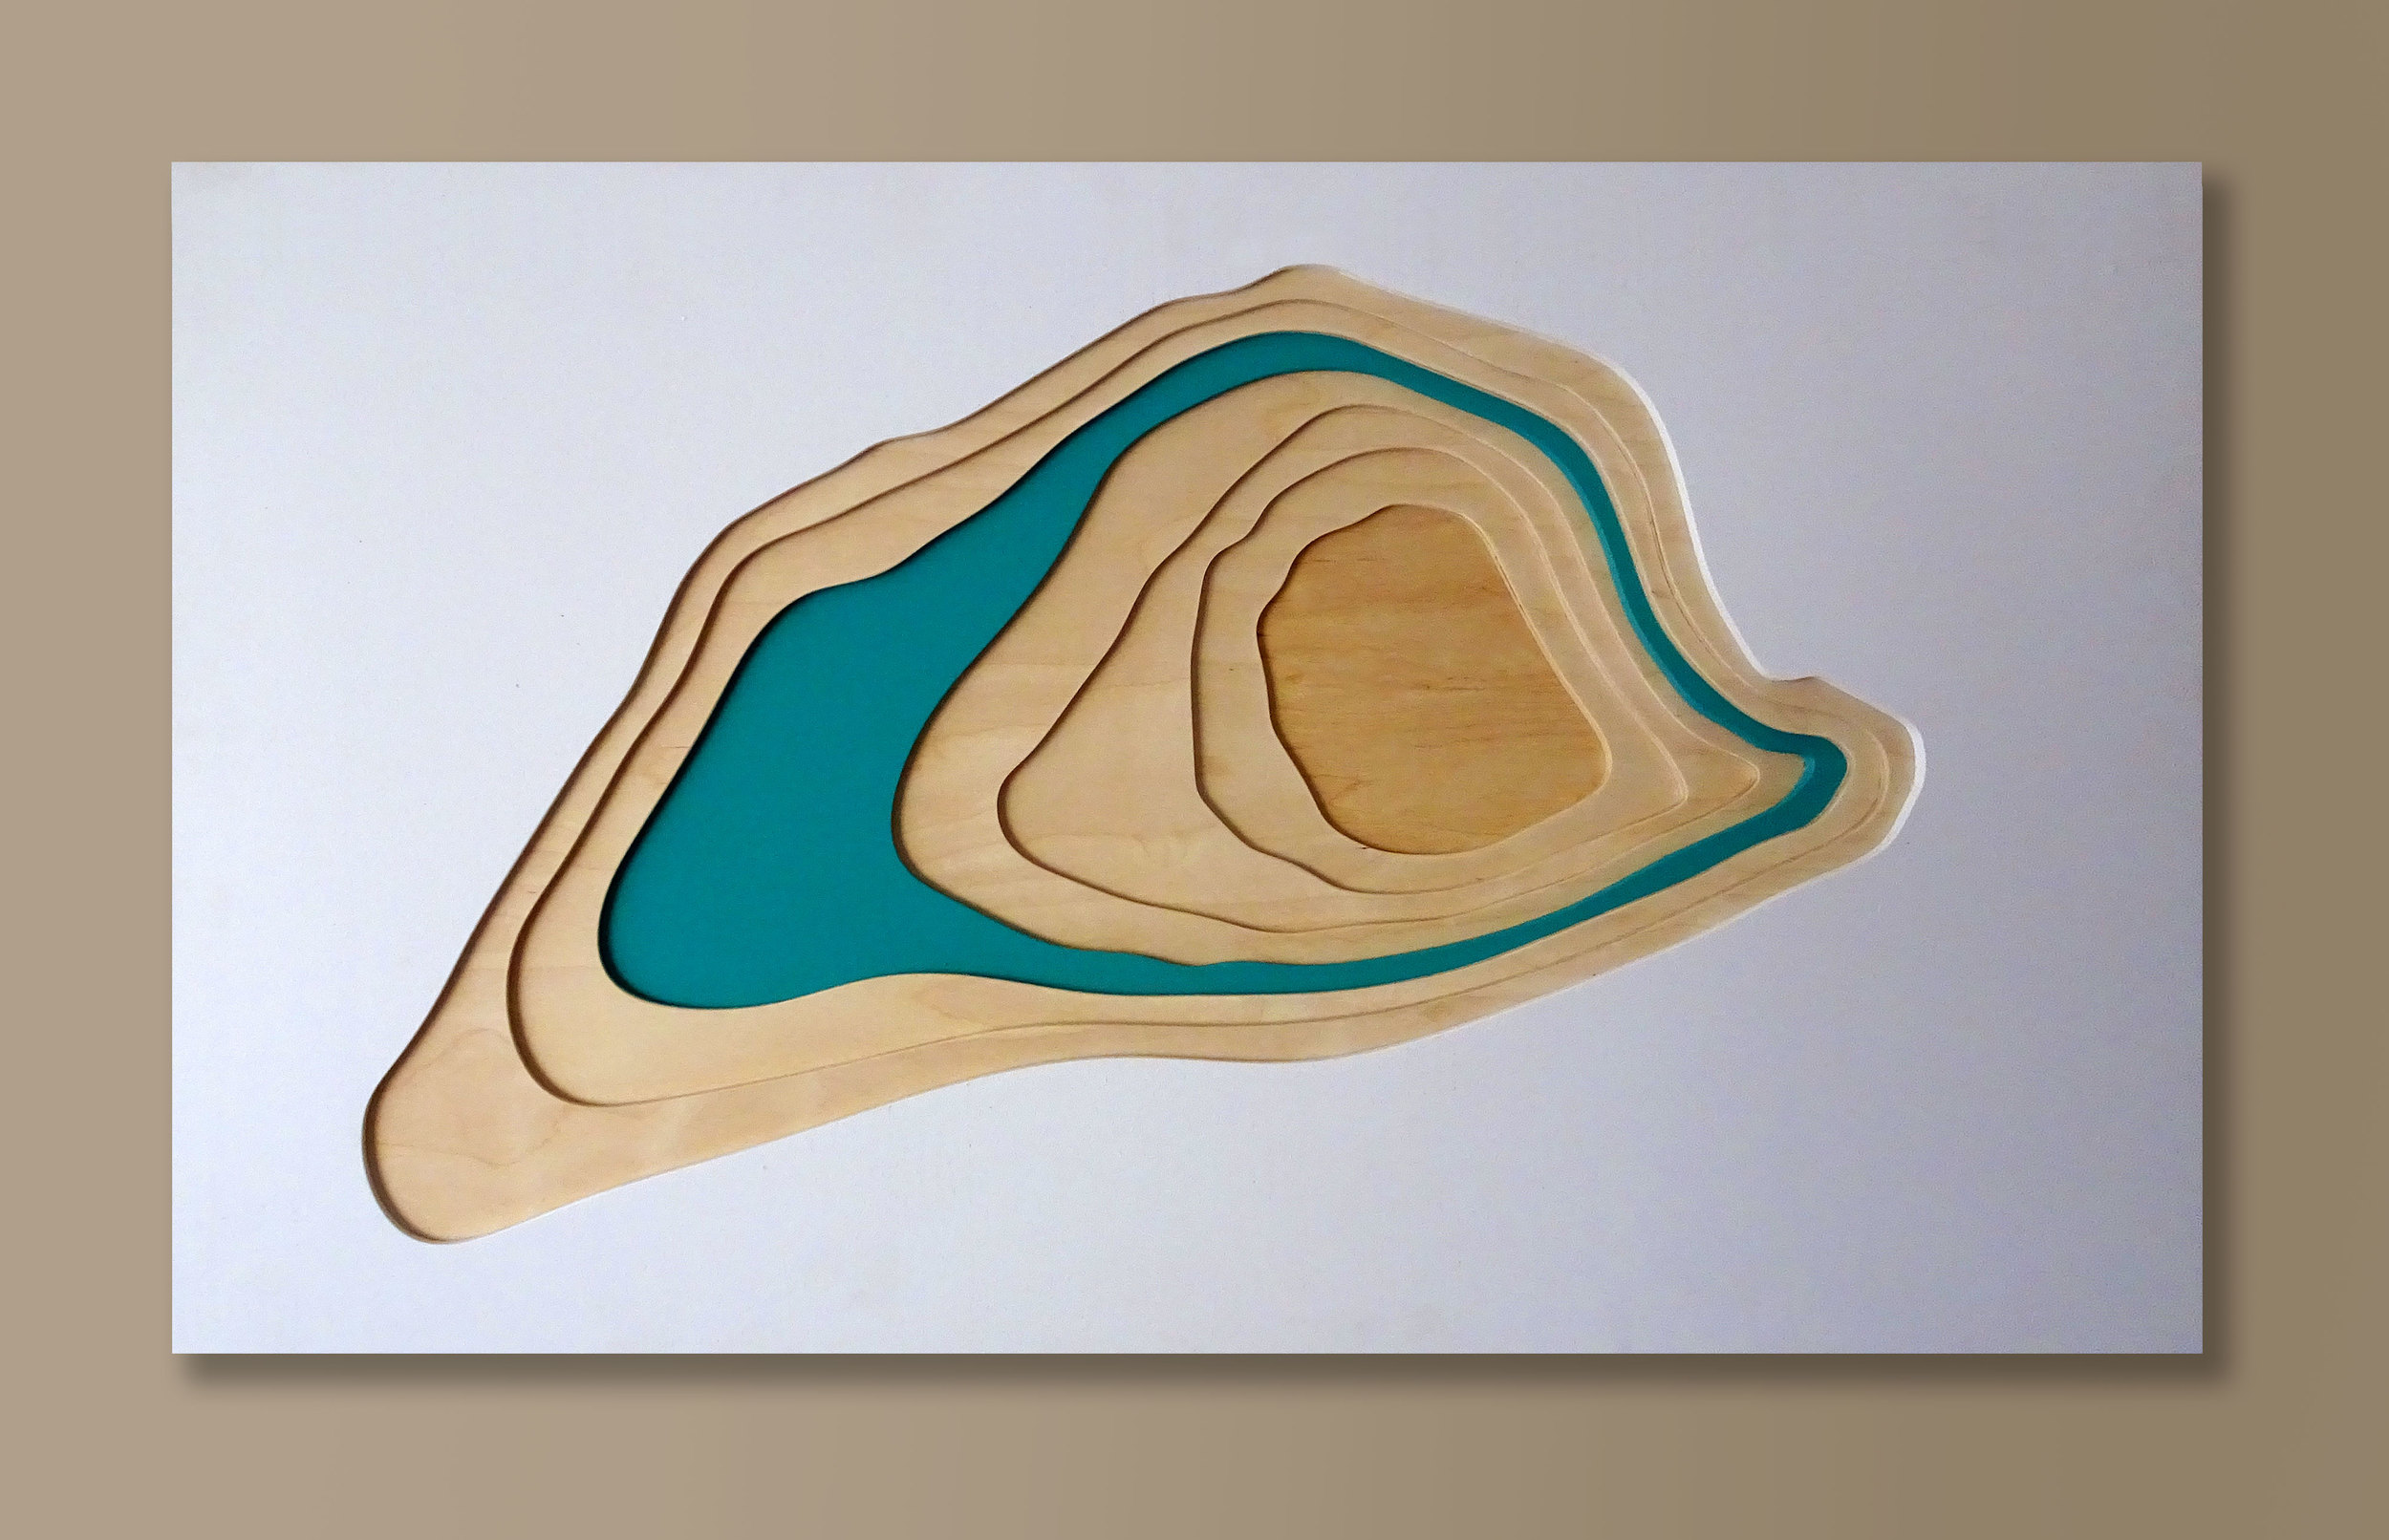 Crater Wall Art - FORREST designs